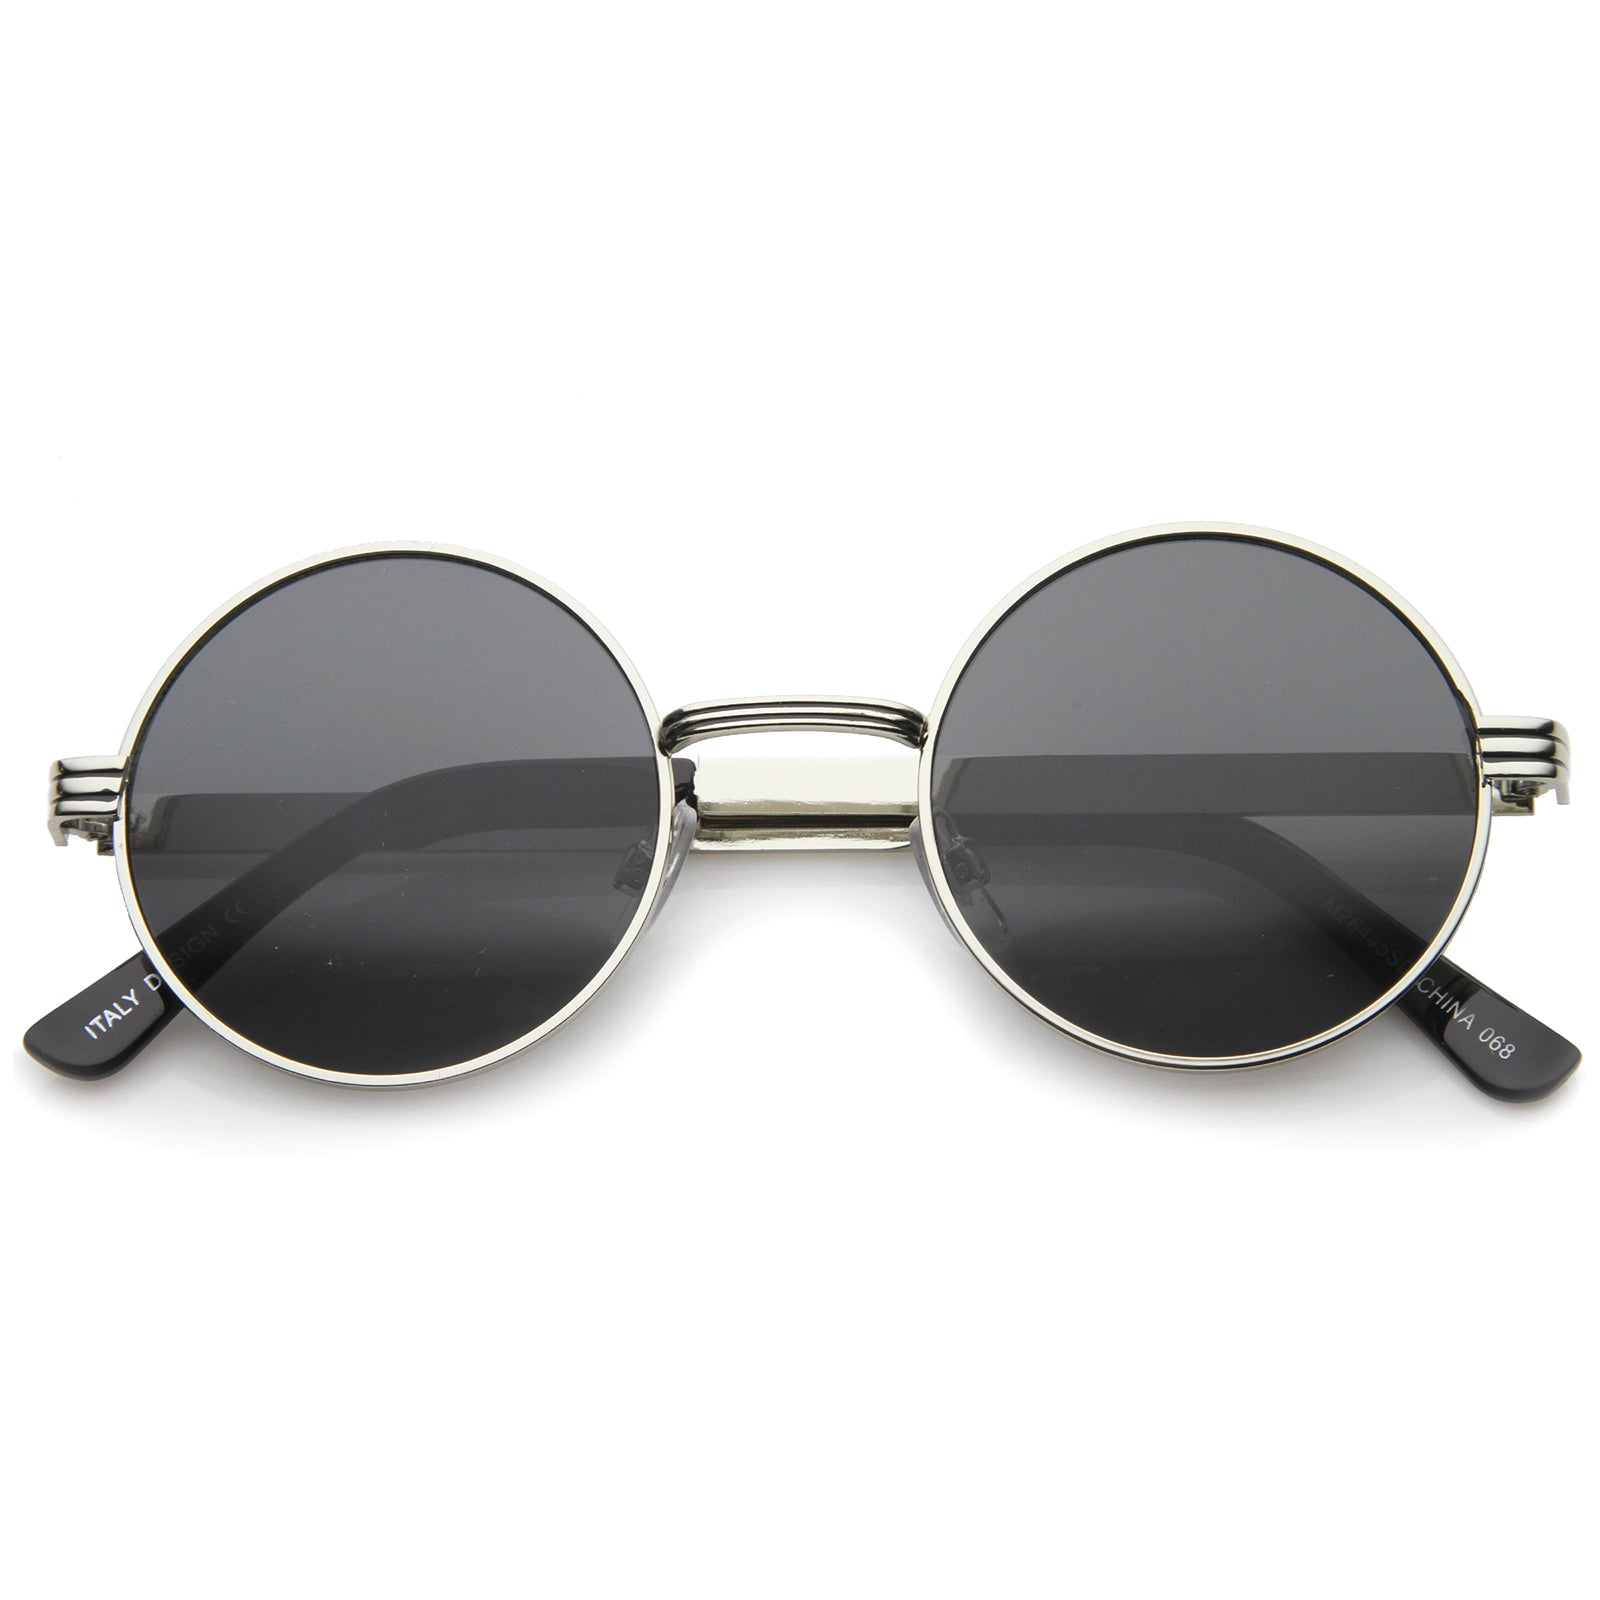 Retro Fashion Metal Textured Frame Flat Lens Round Sunglasses 50mm - sunglass.la - 9